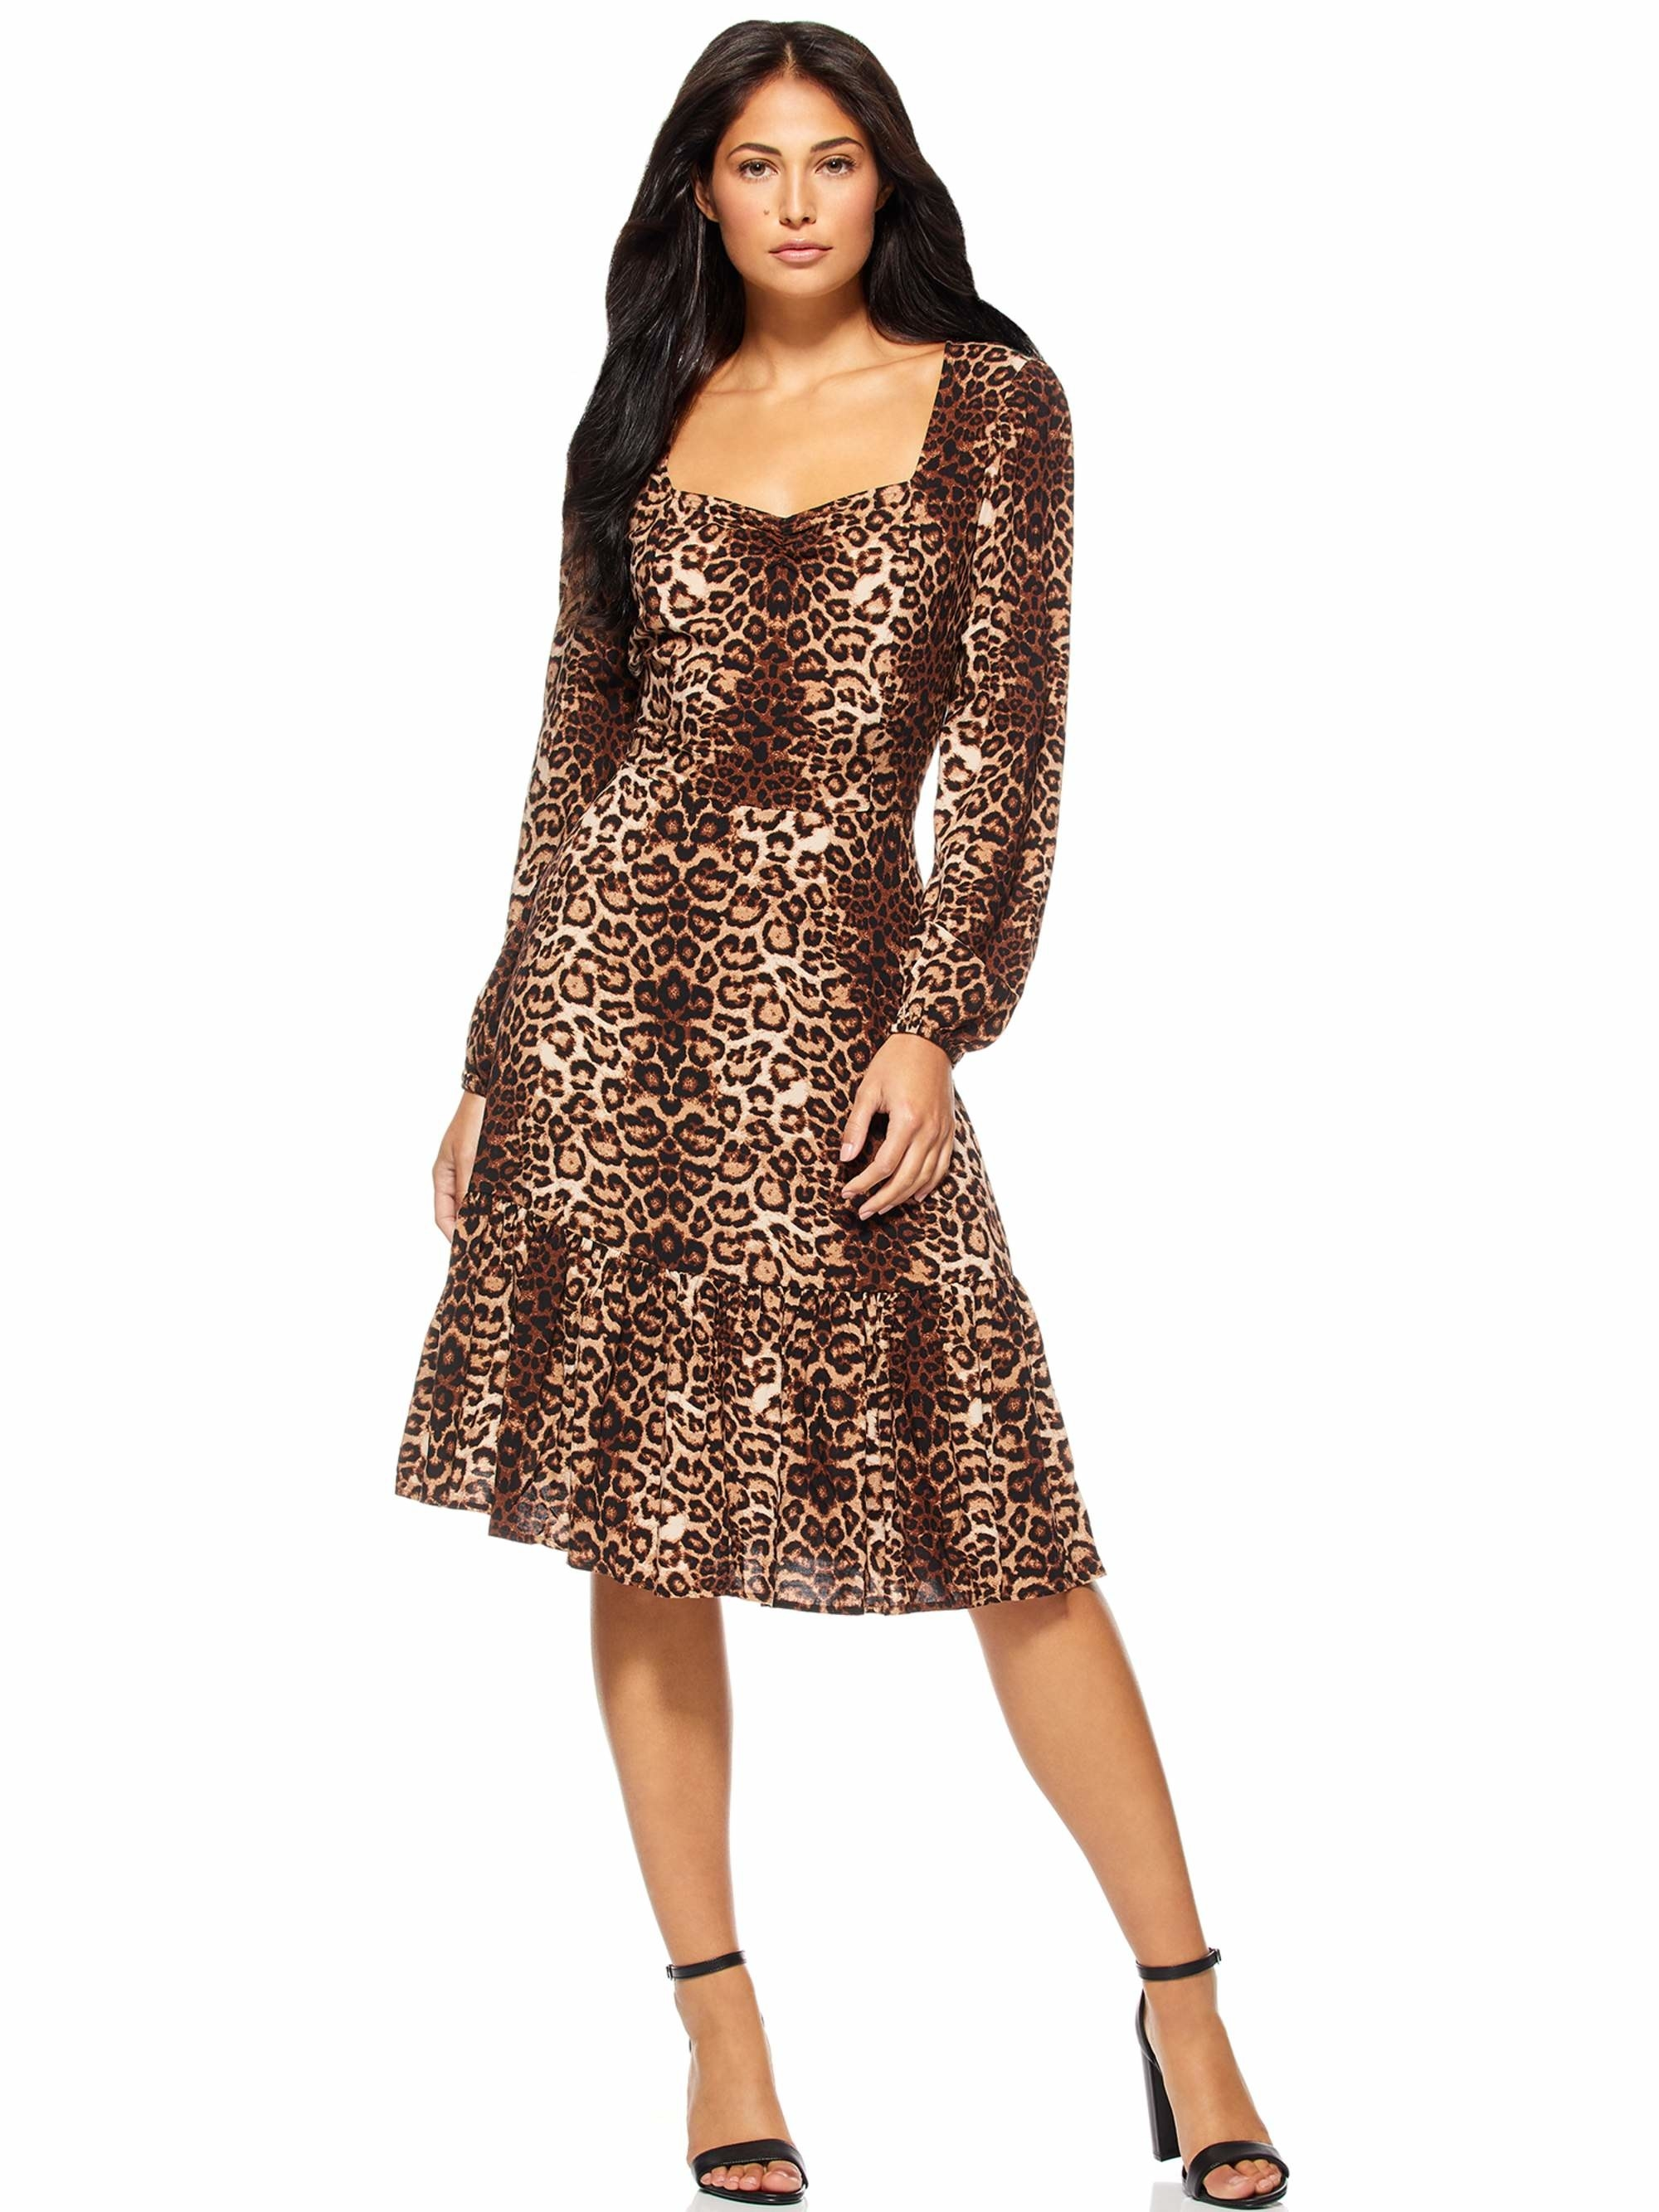 A model wearing a cheetah print dress